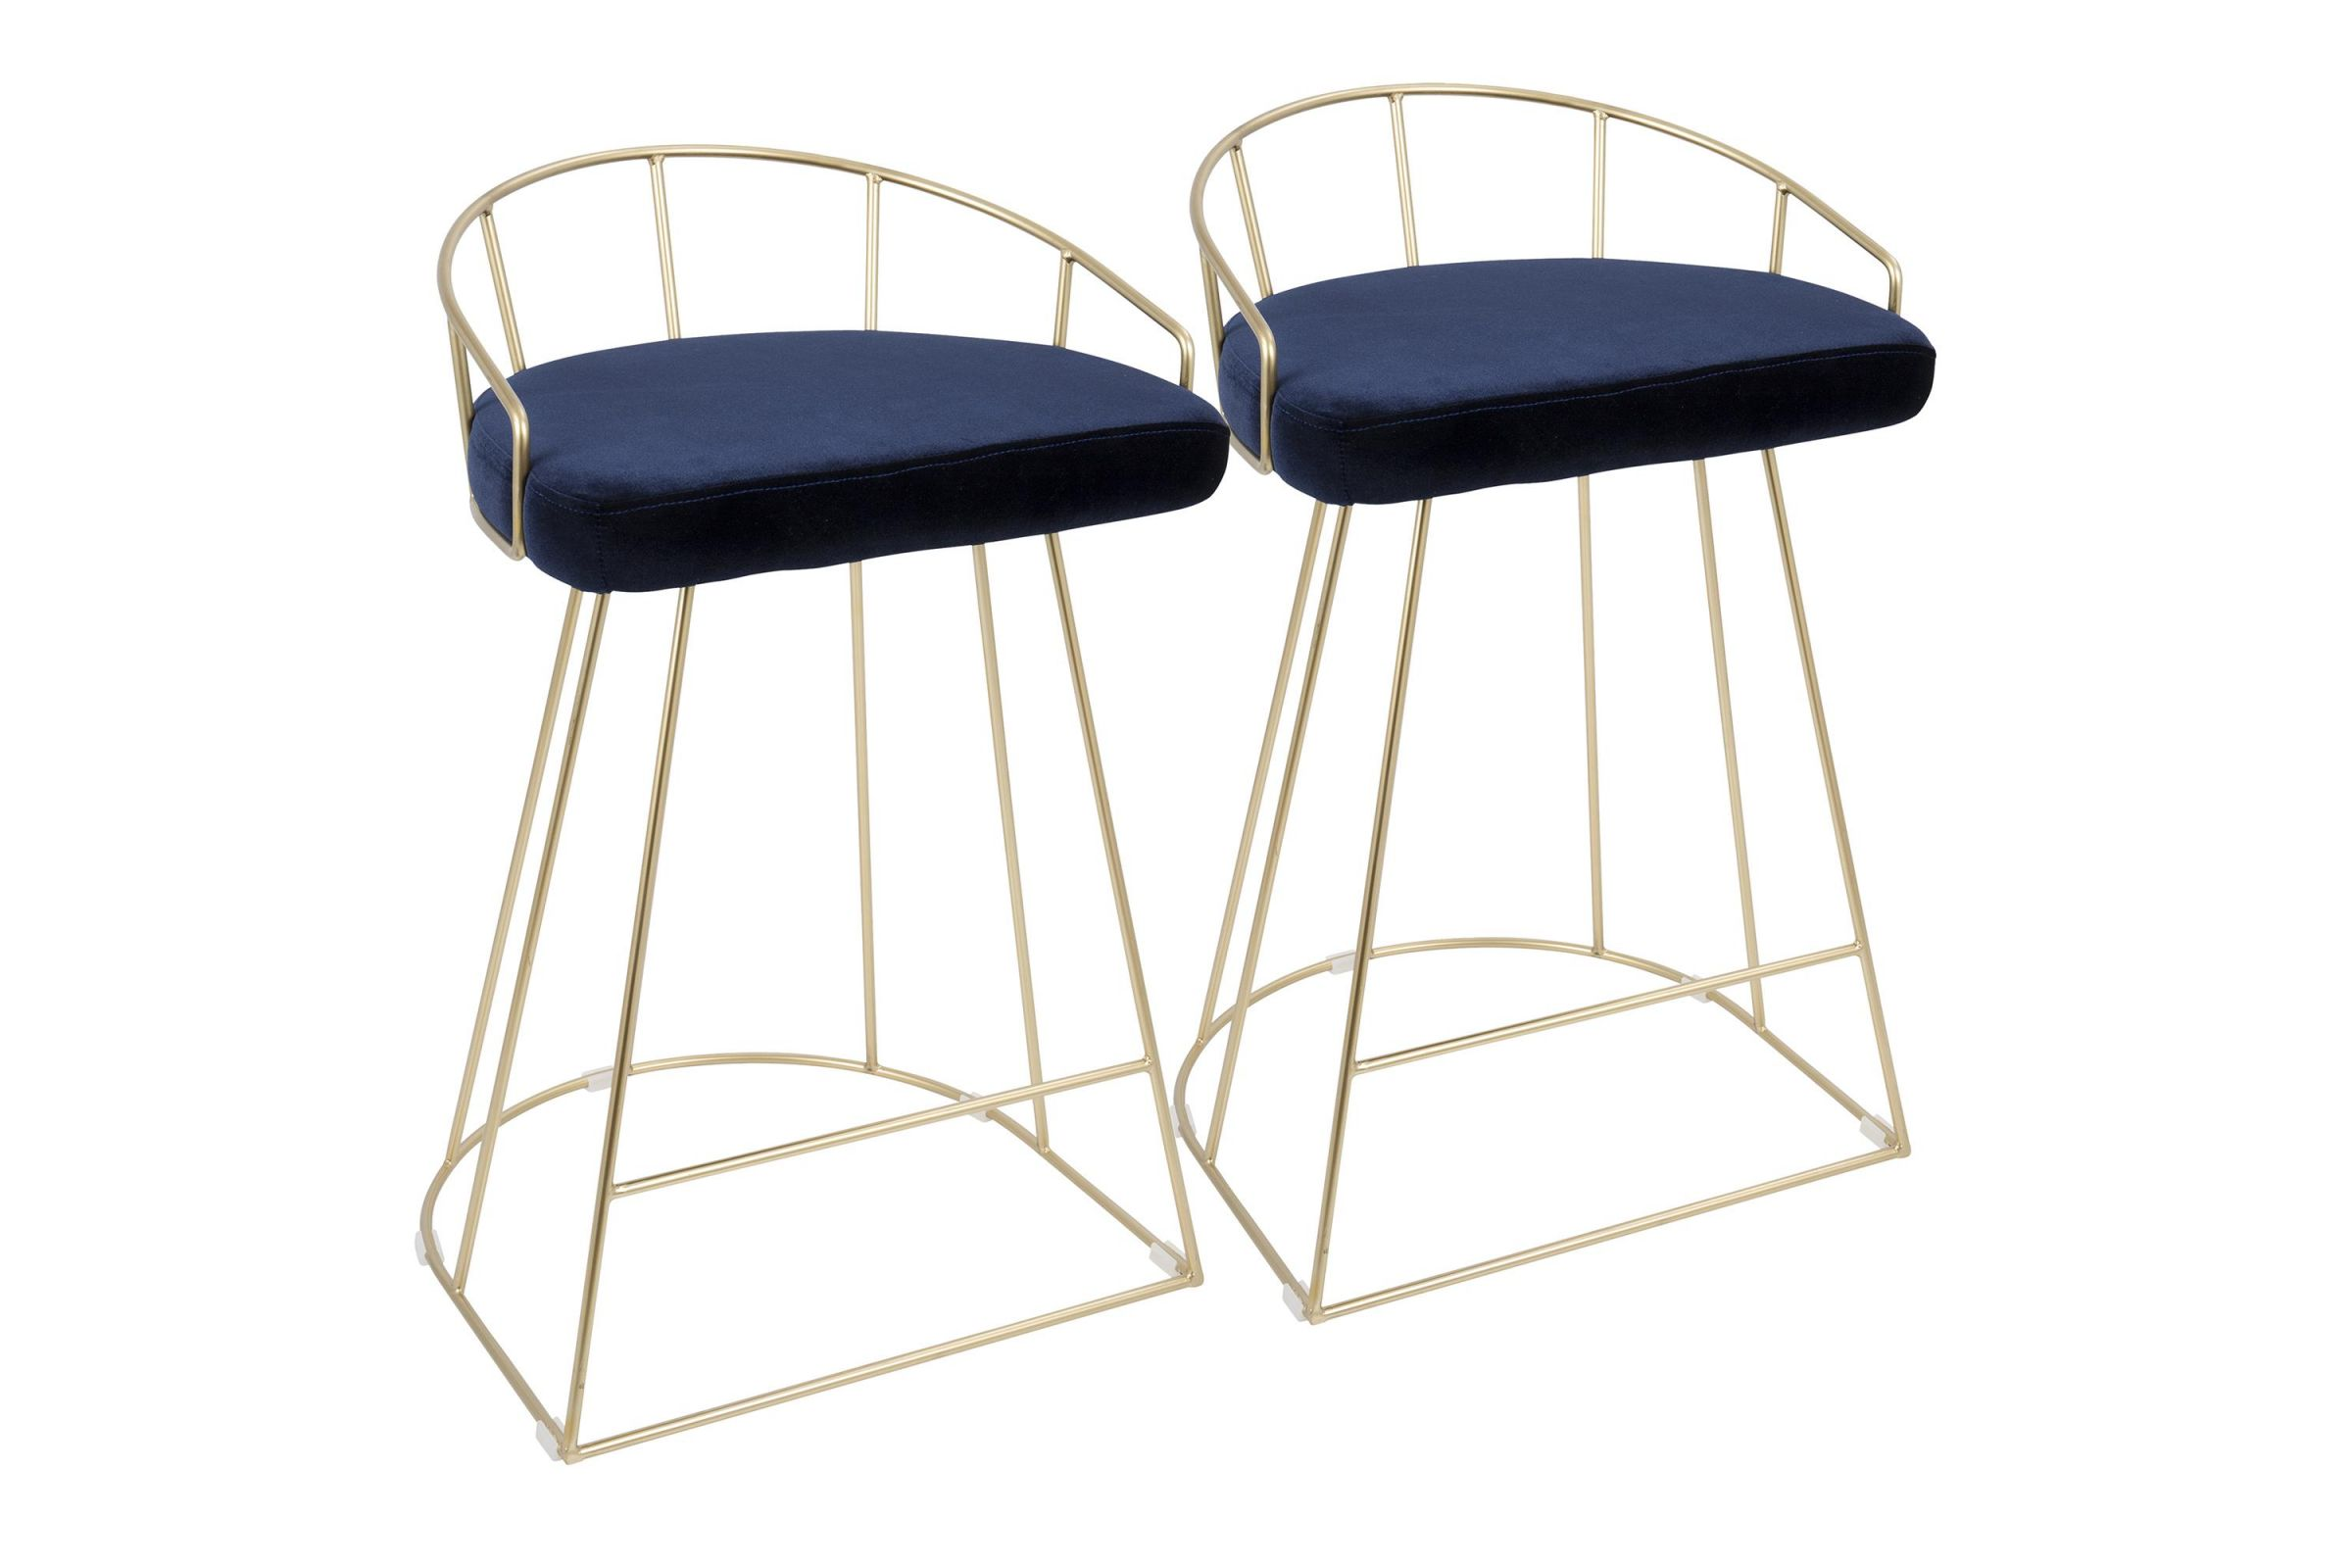 Strange Canary Contemporary 26 Counter Stools Set Fo 2 In Gold And Blue Velvet By Lumisource Gmtry Best Dining Table And Chair Ideas Images Gmtryco